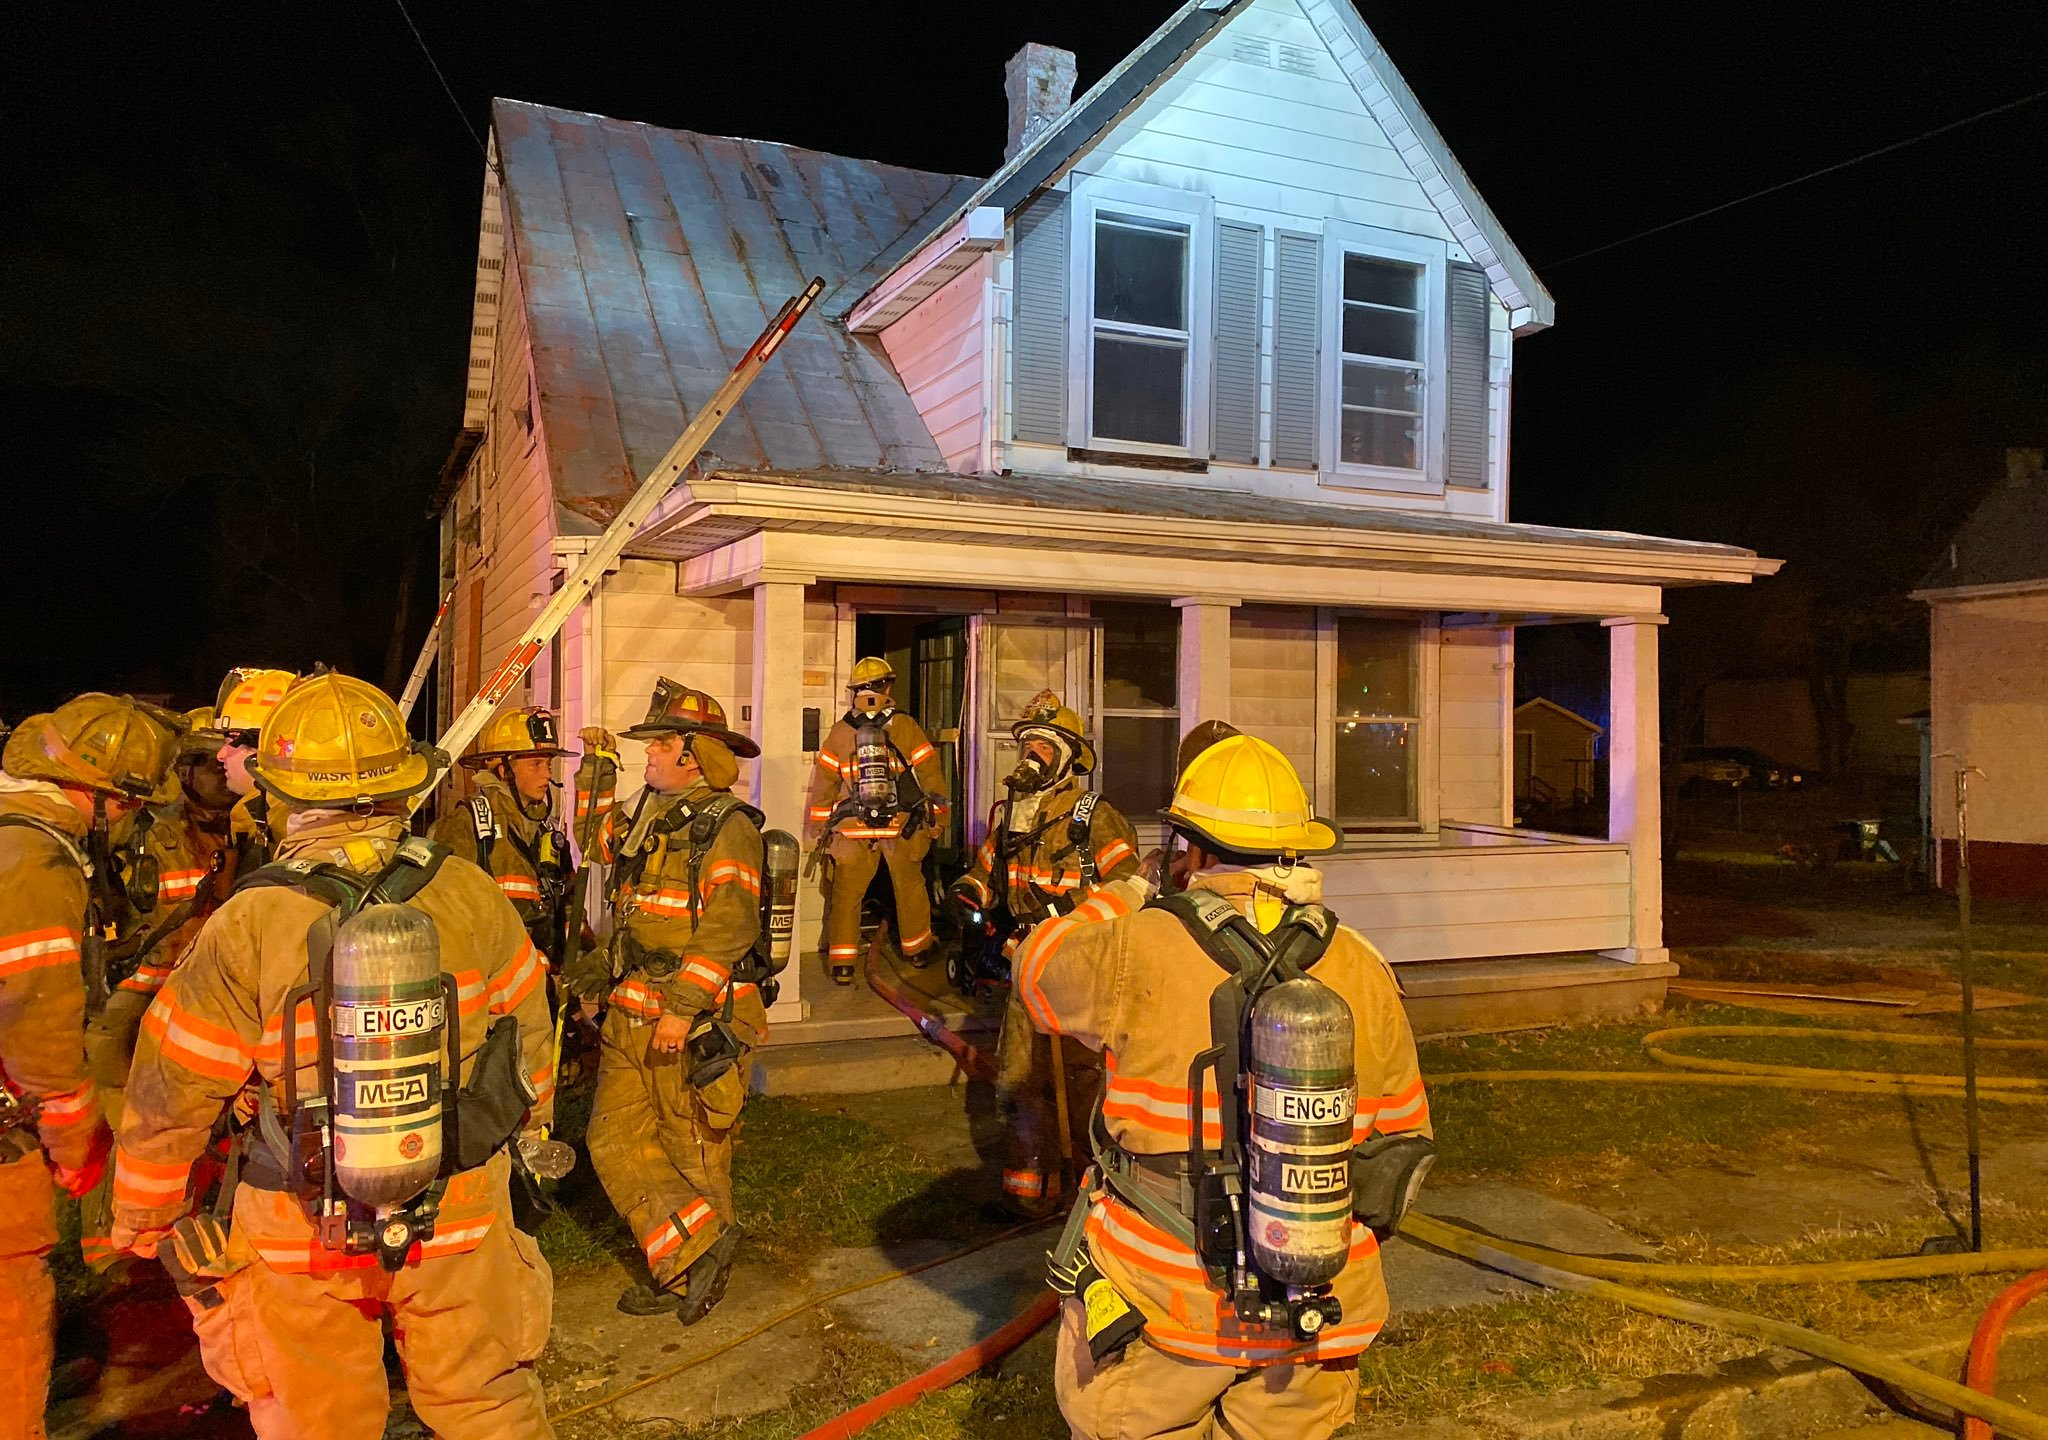 Roanoke Fire-EMS extinguished a fire at this home in the 700 block of Bullitt Avenue Southeast on Friday, Dec. 6. It was one of two fires reported in Roanoke Friday night. (Photo: Courtesy Roanoke Fire-EMS)